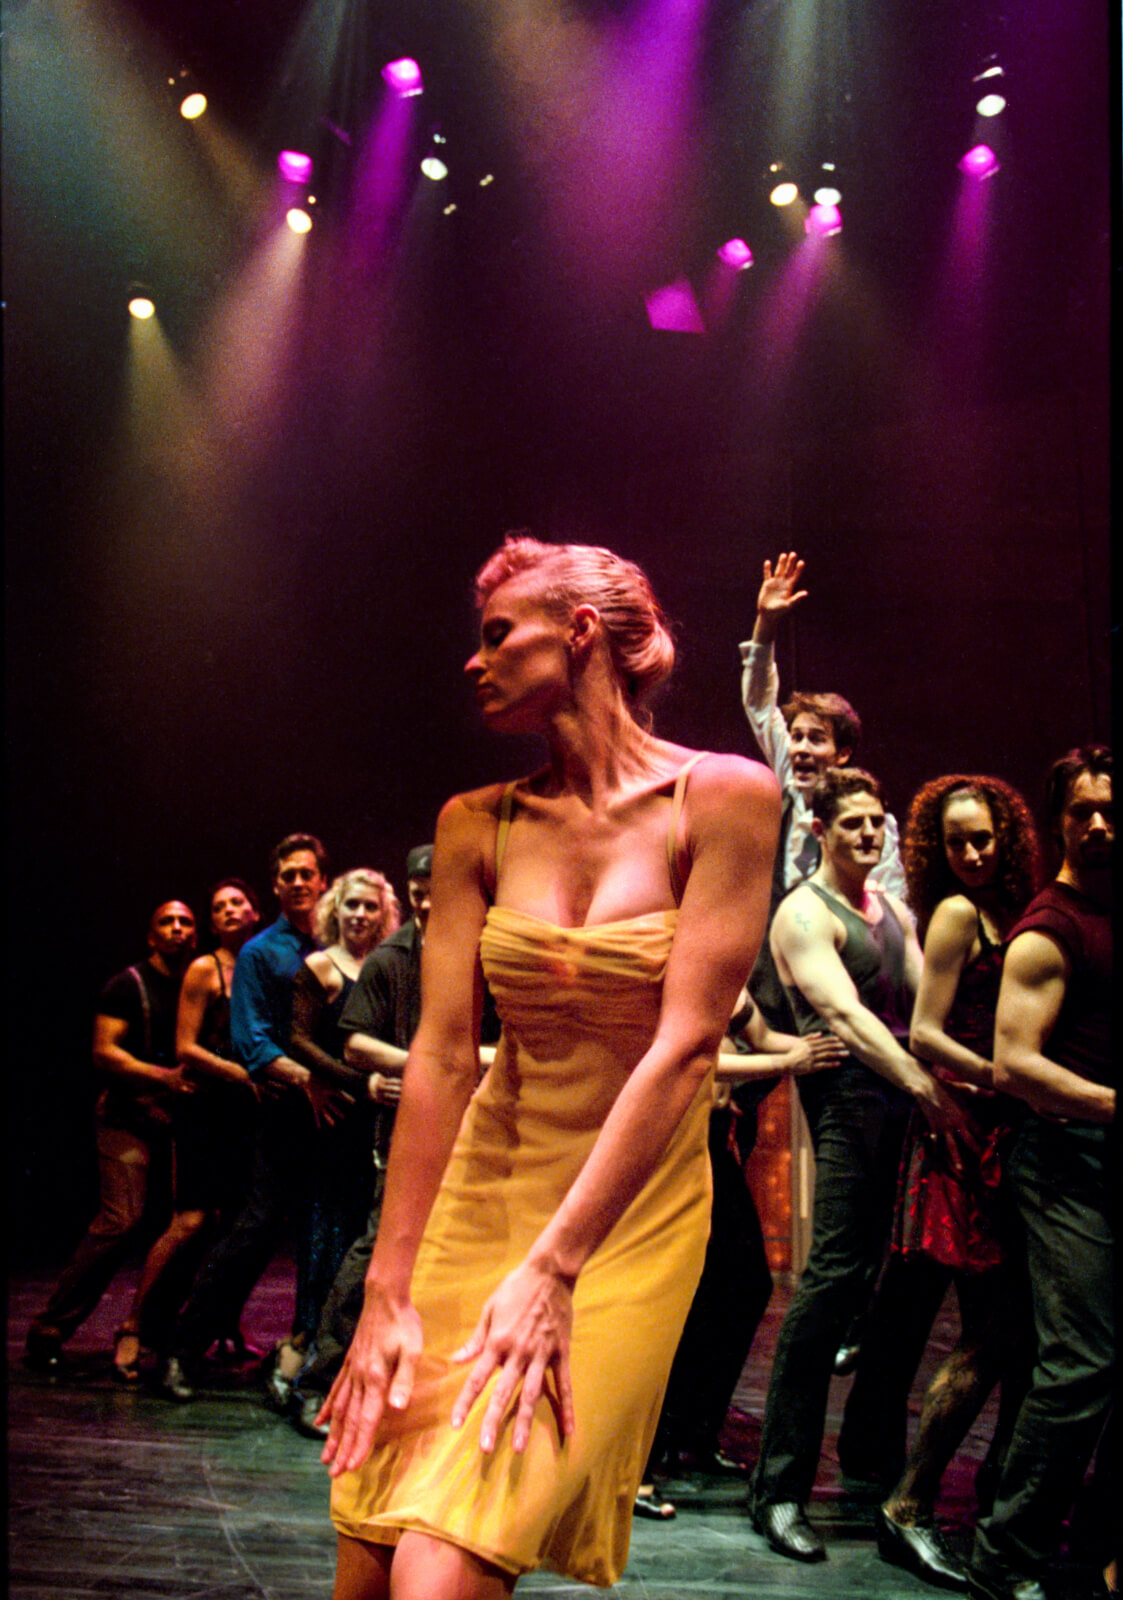 Girl in the Yellow Dress (Deborah Yates) dances downstage center as the club-goers are in a single file line behind her. Boyd Gaines is trying to get her attention as he is behind the line of ensemble members.